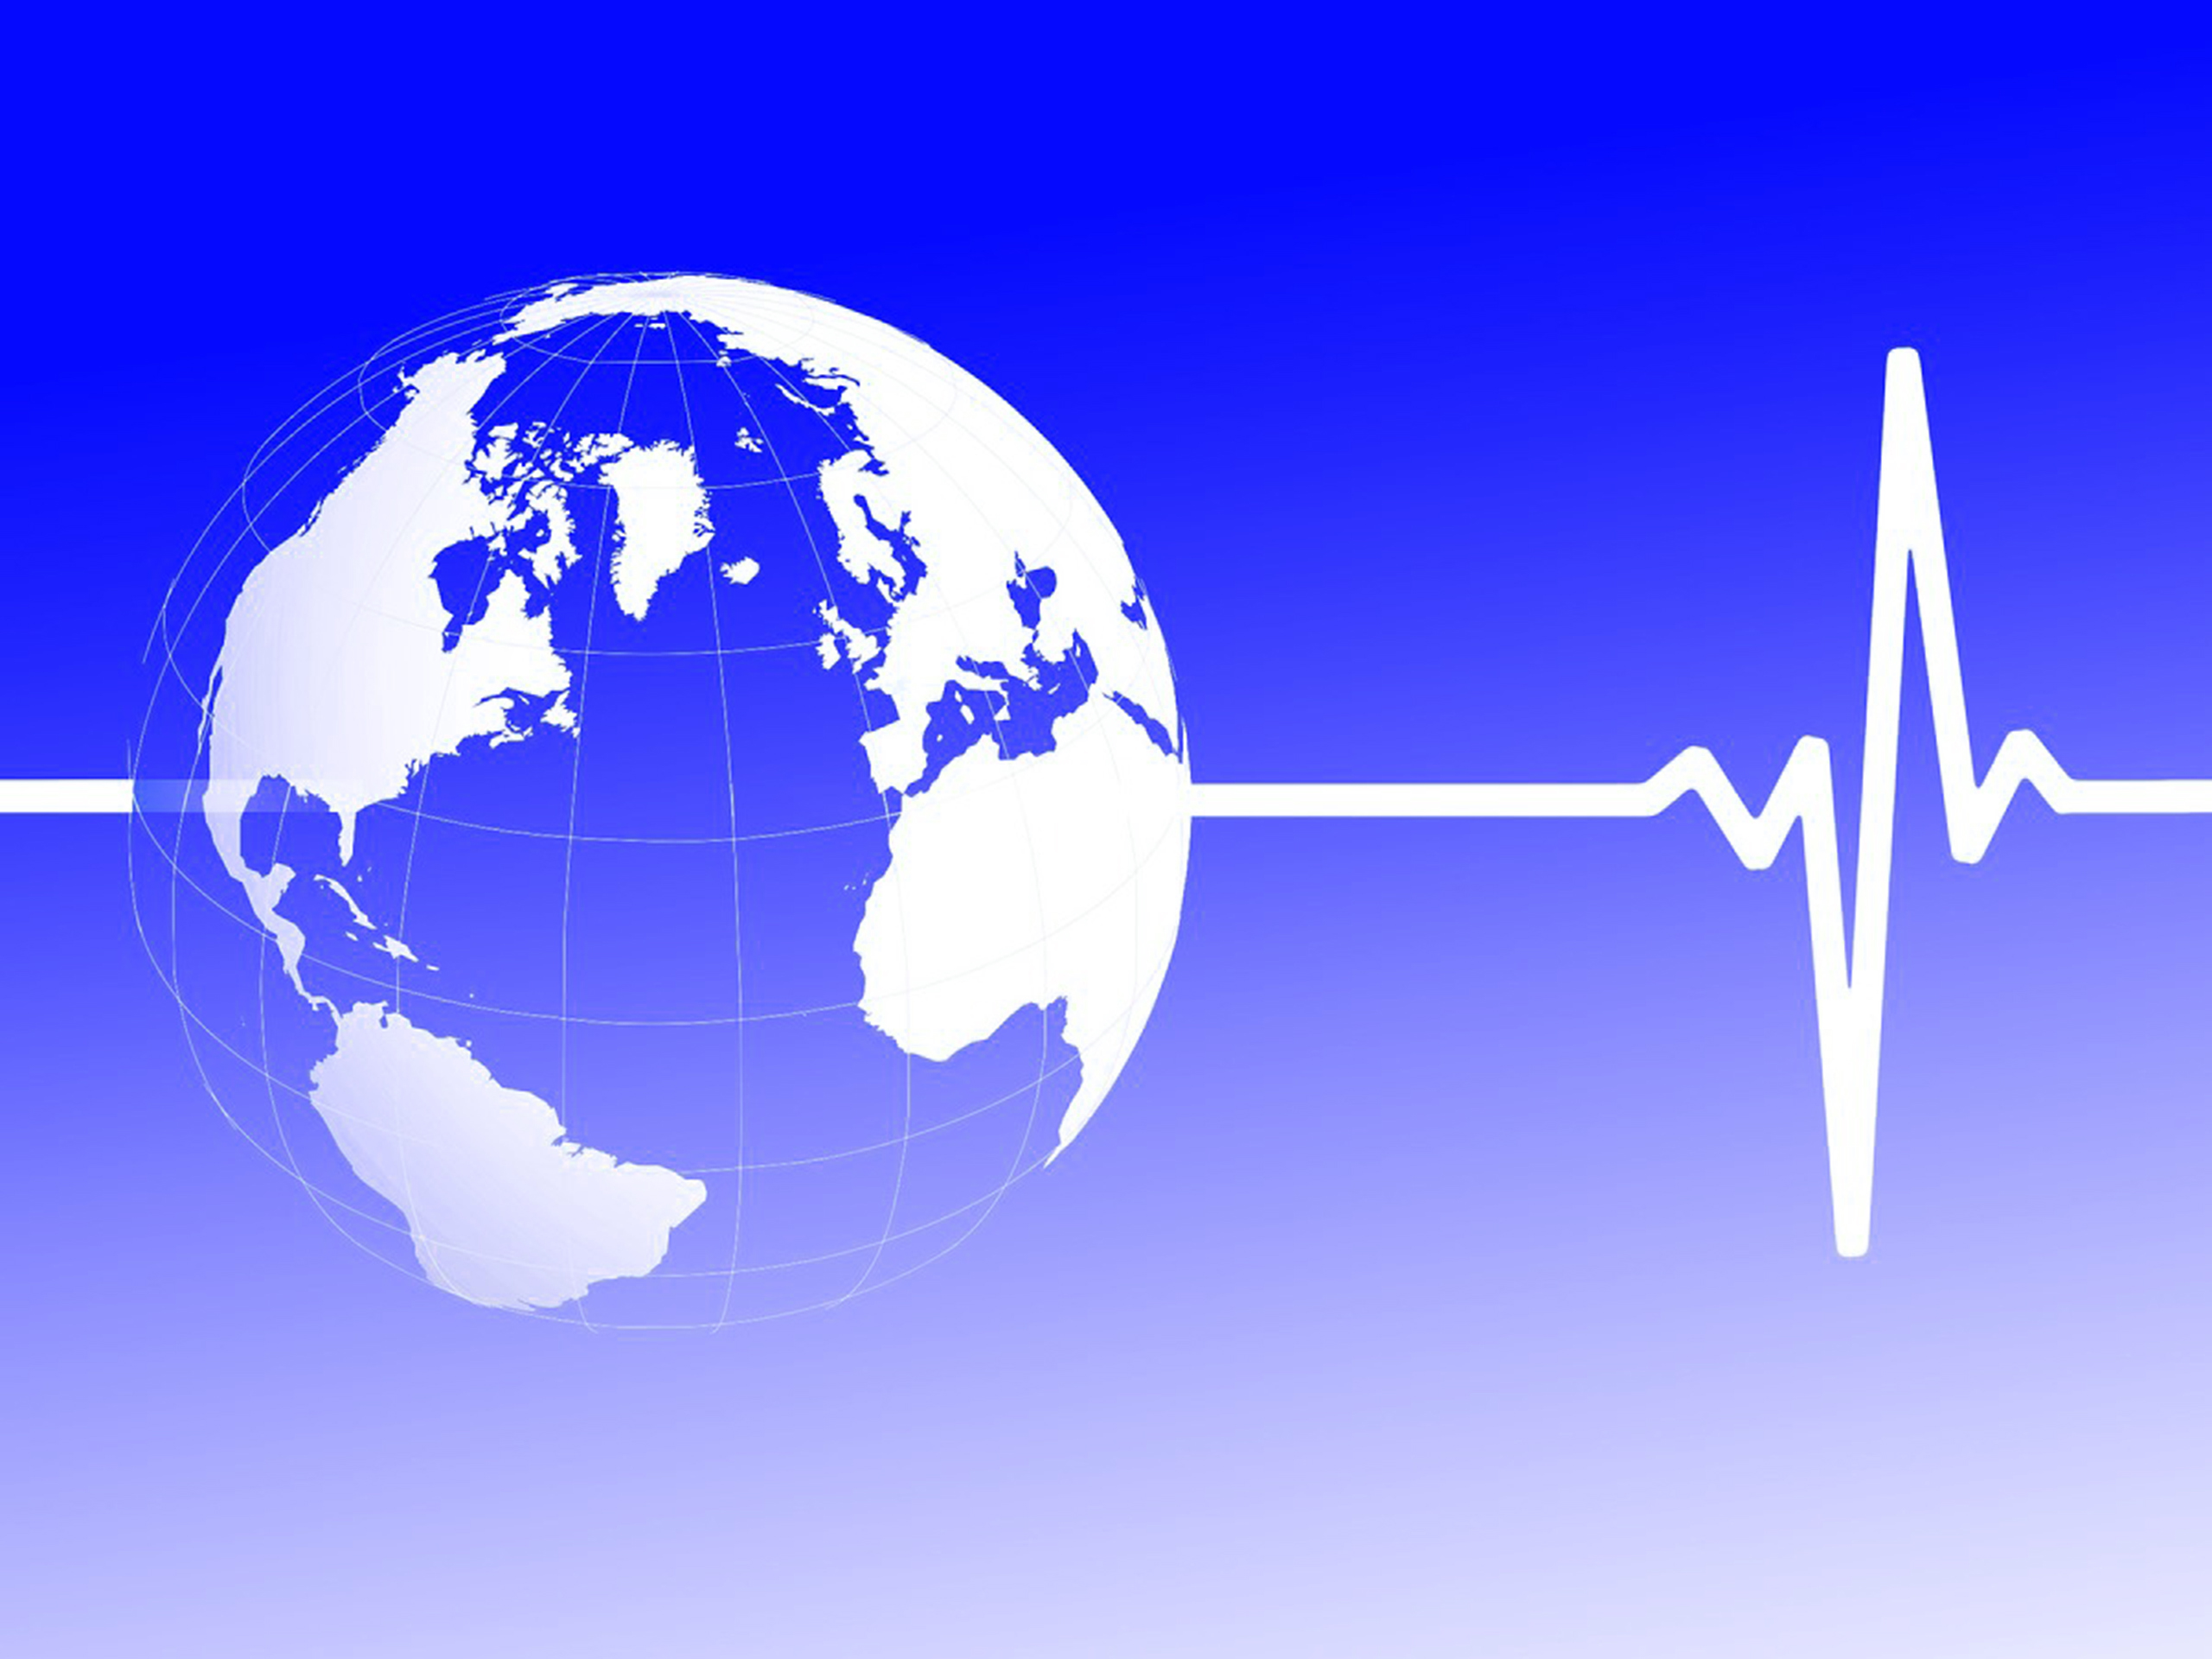 Global health: A philosophical narrative in real time